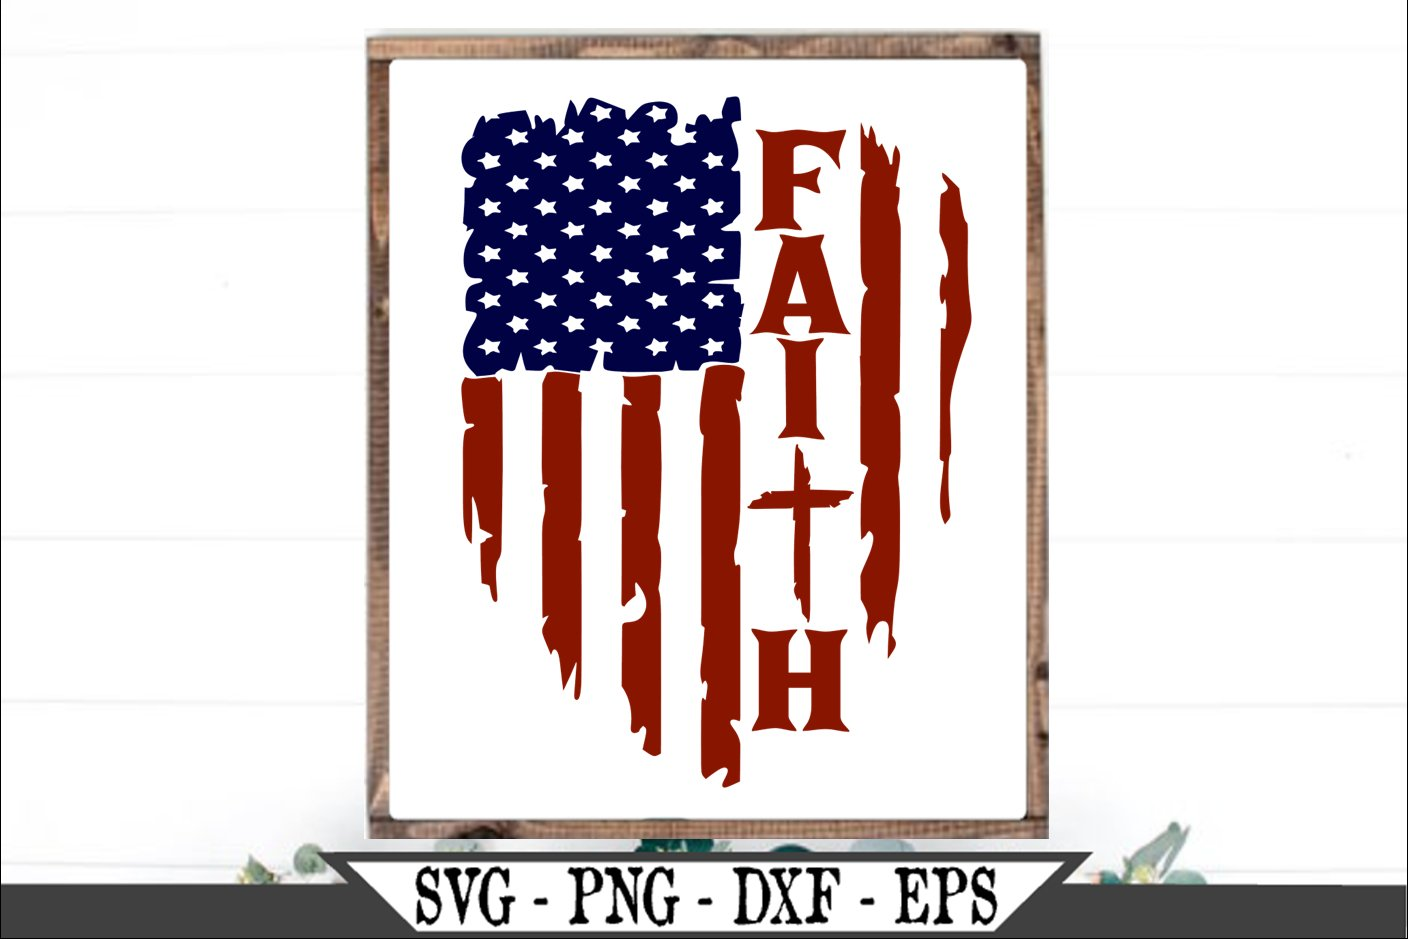 Distressed American Flag Faith With Christian Cross SVG (644359) | SVGs |  Design Bundles